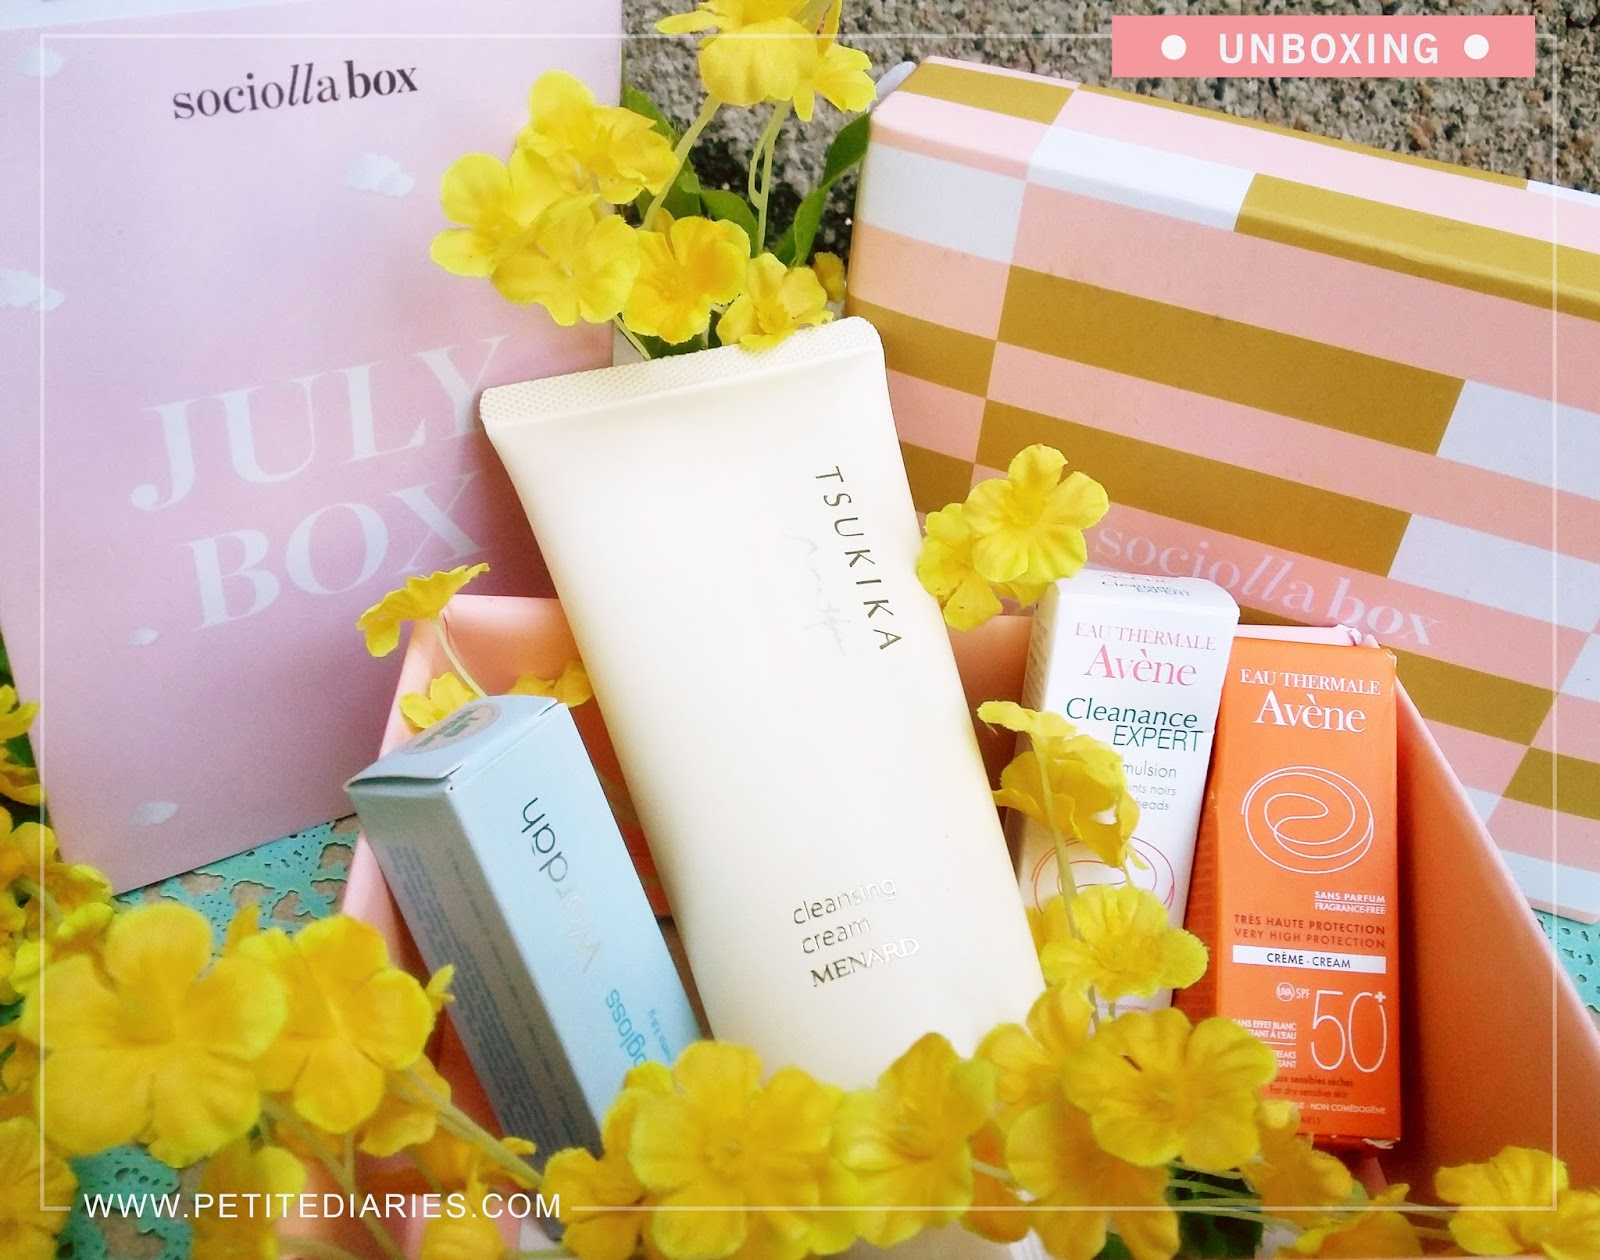 sociolla box unboxing beauty haul